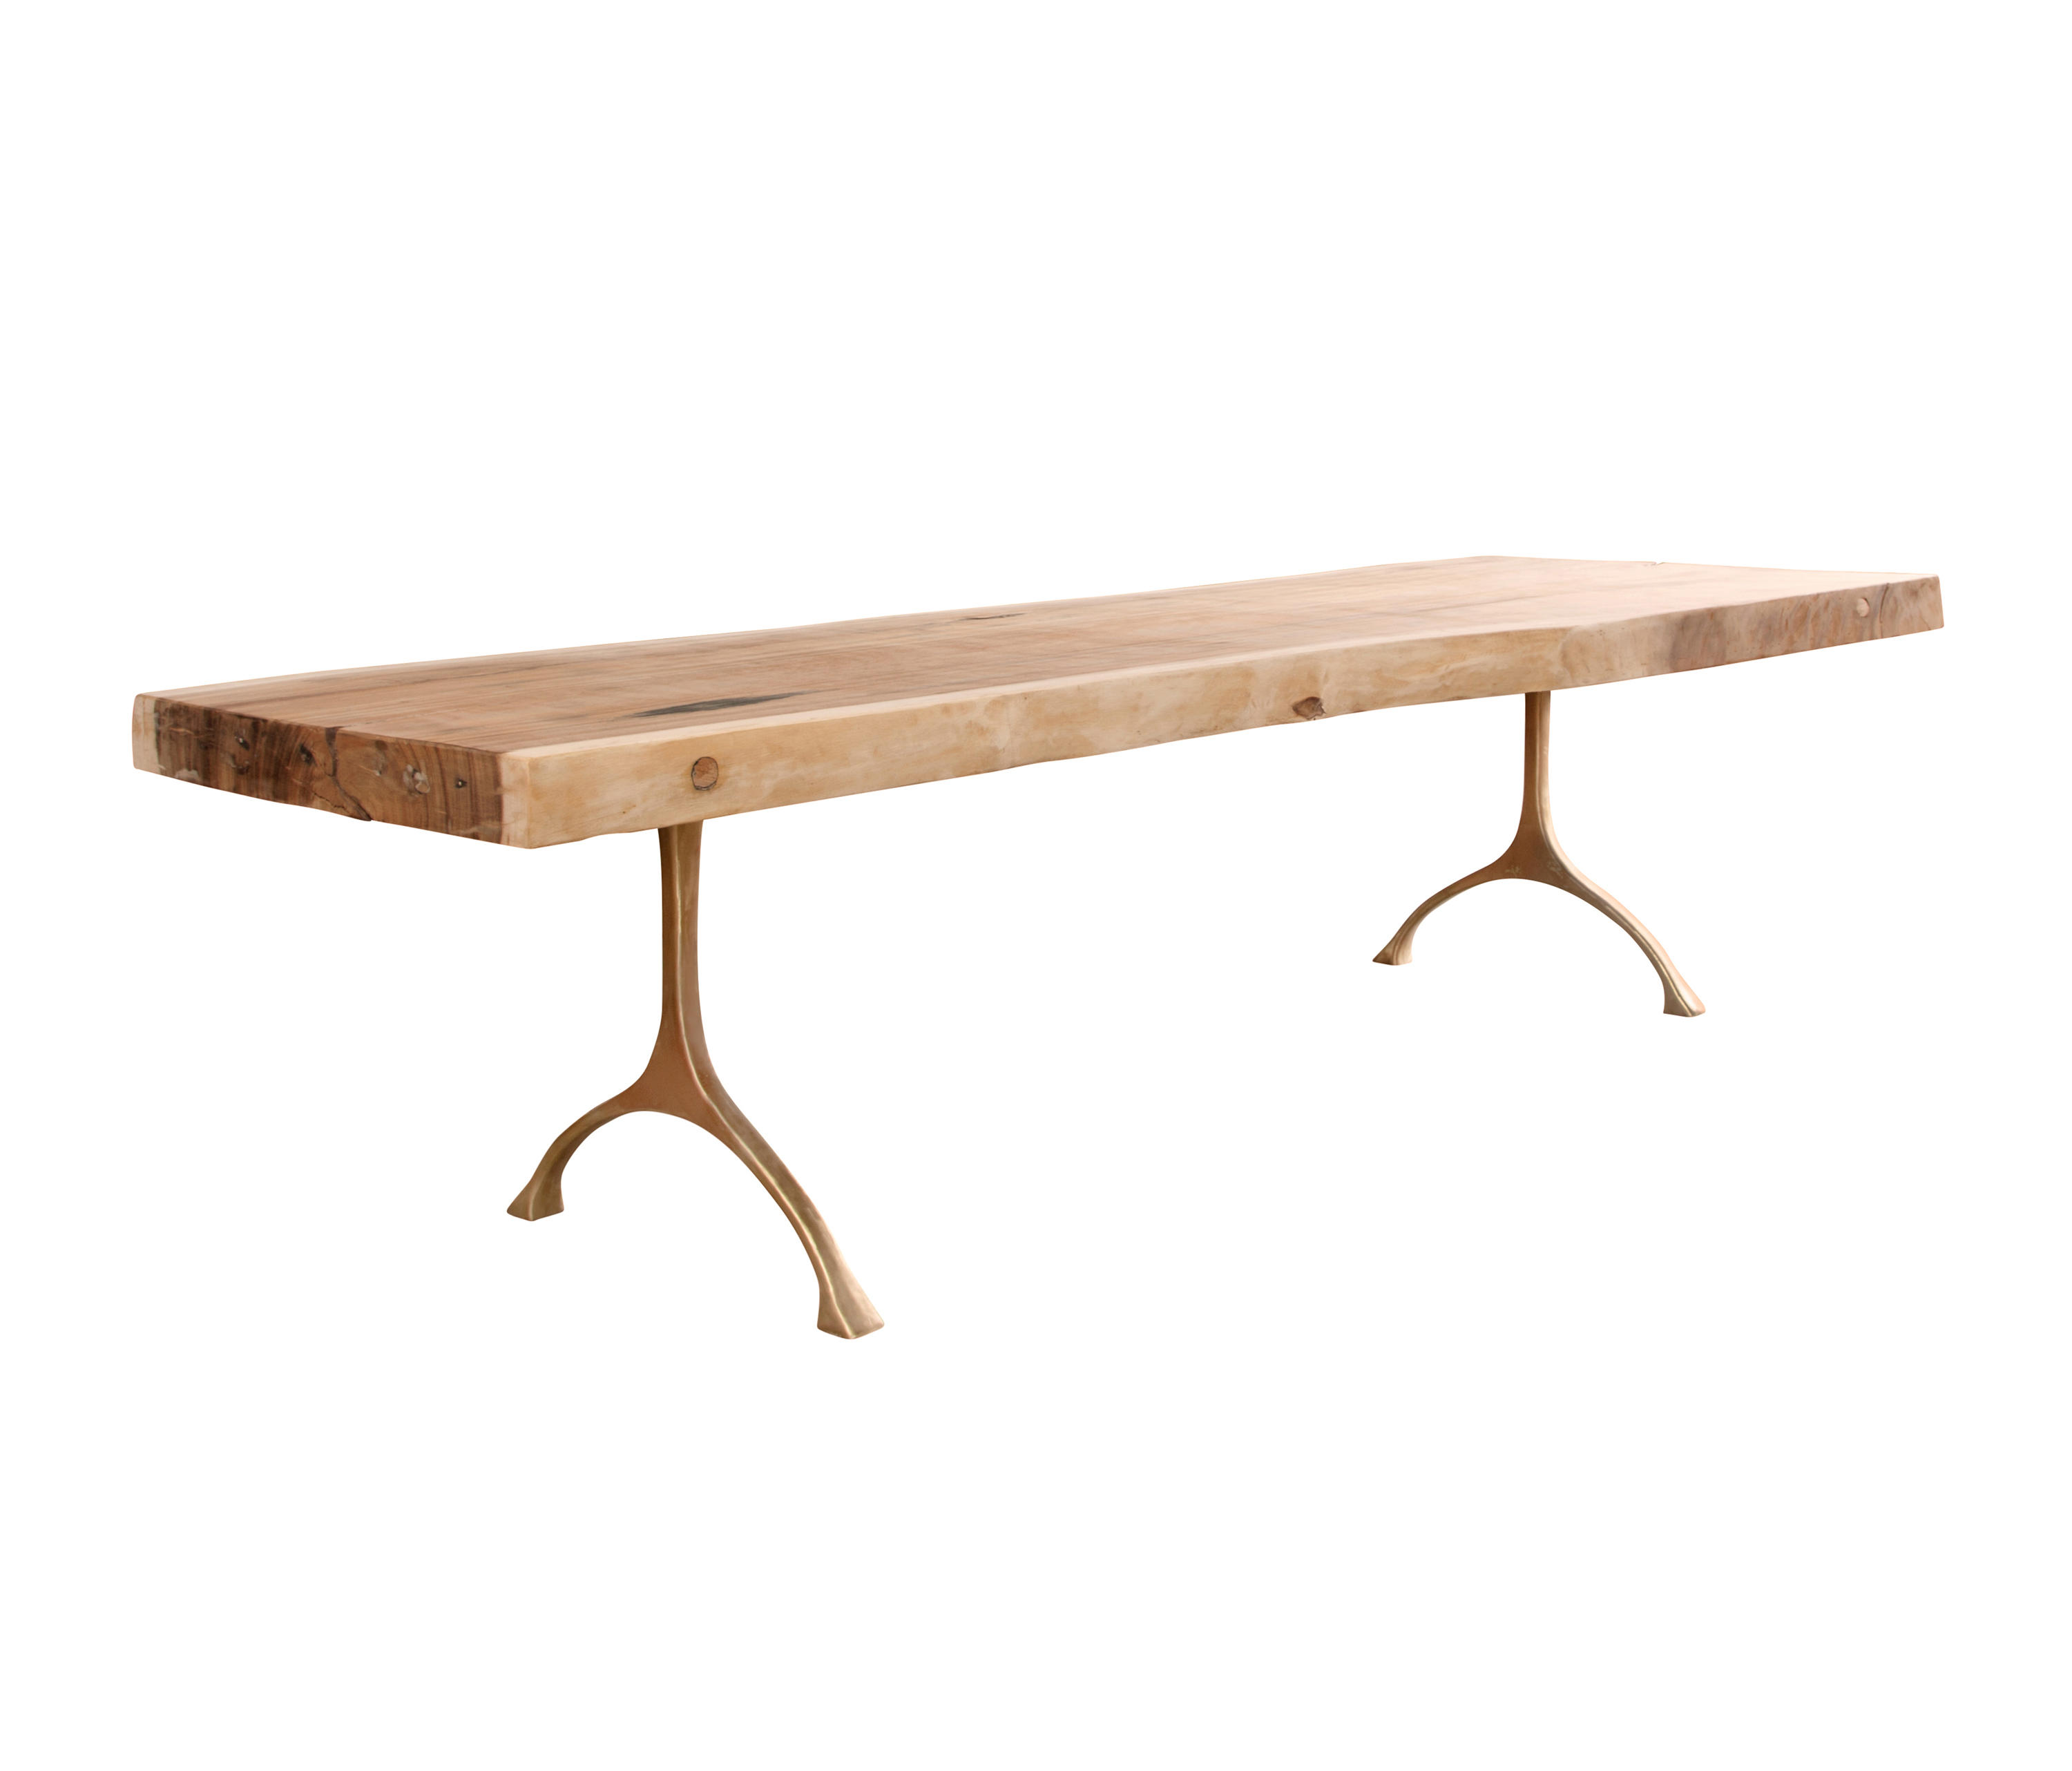 Rough tabletop 300 cm dining tables from norr11 for Table 300 cm